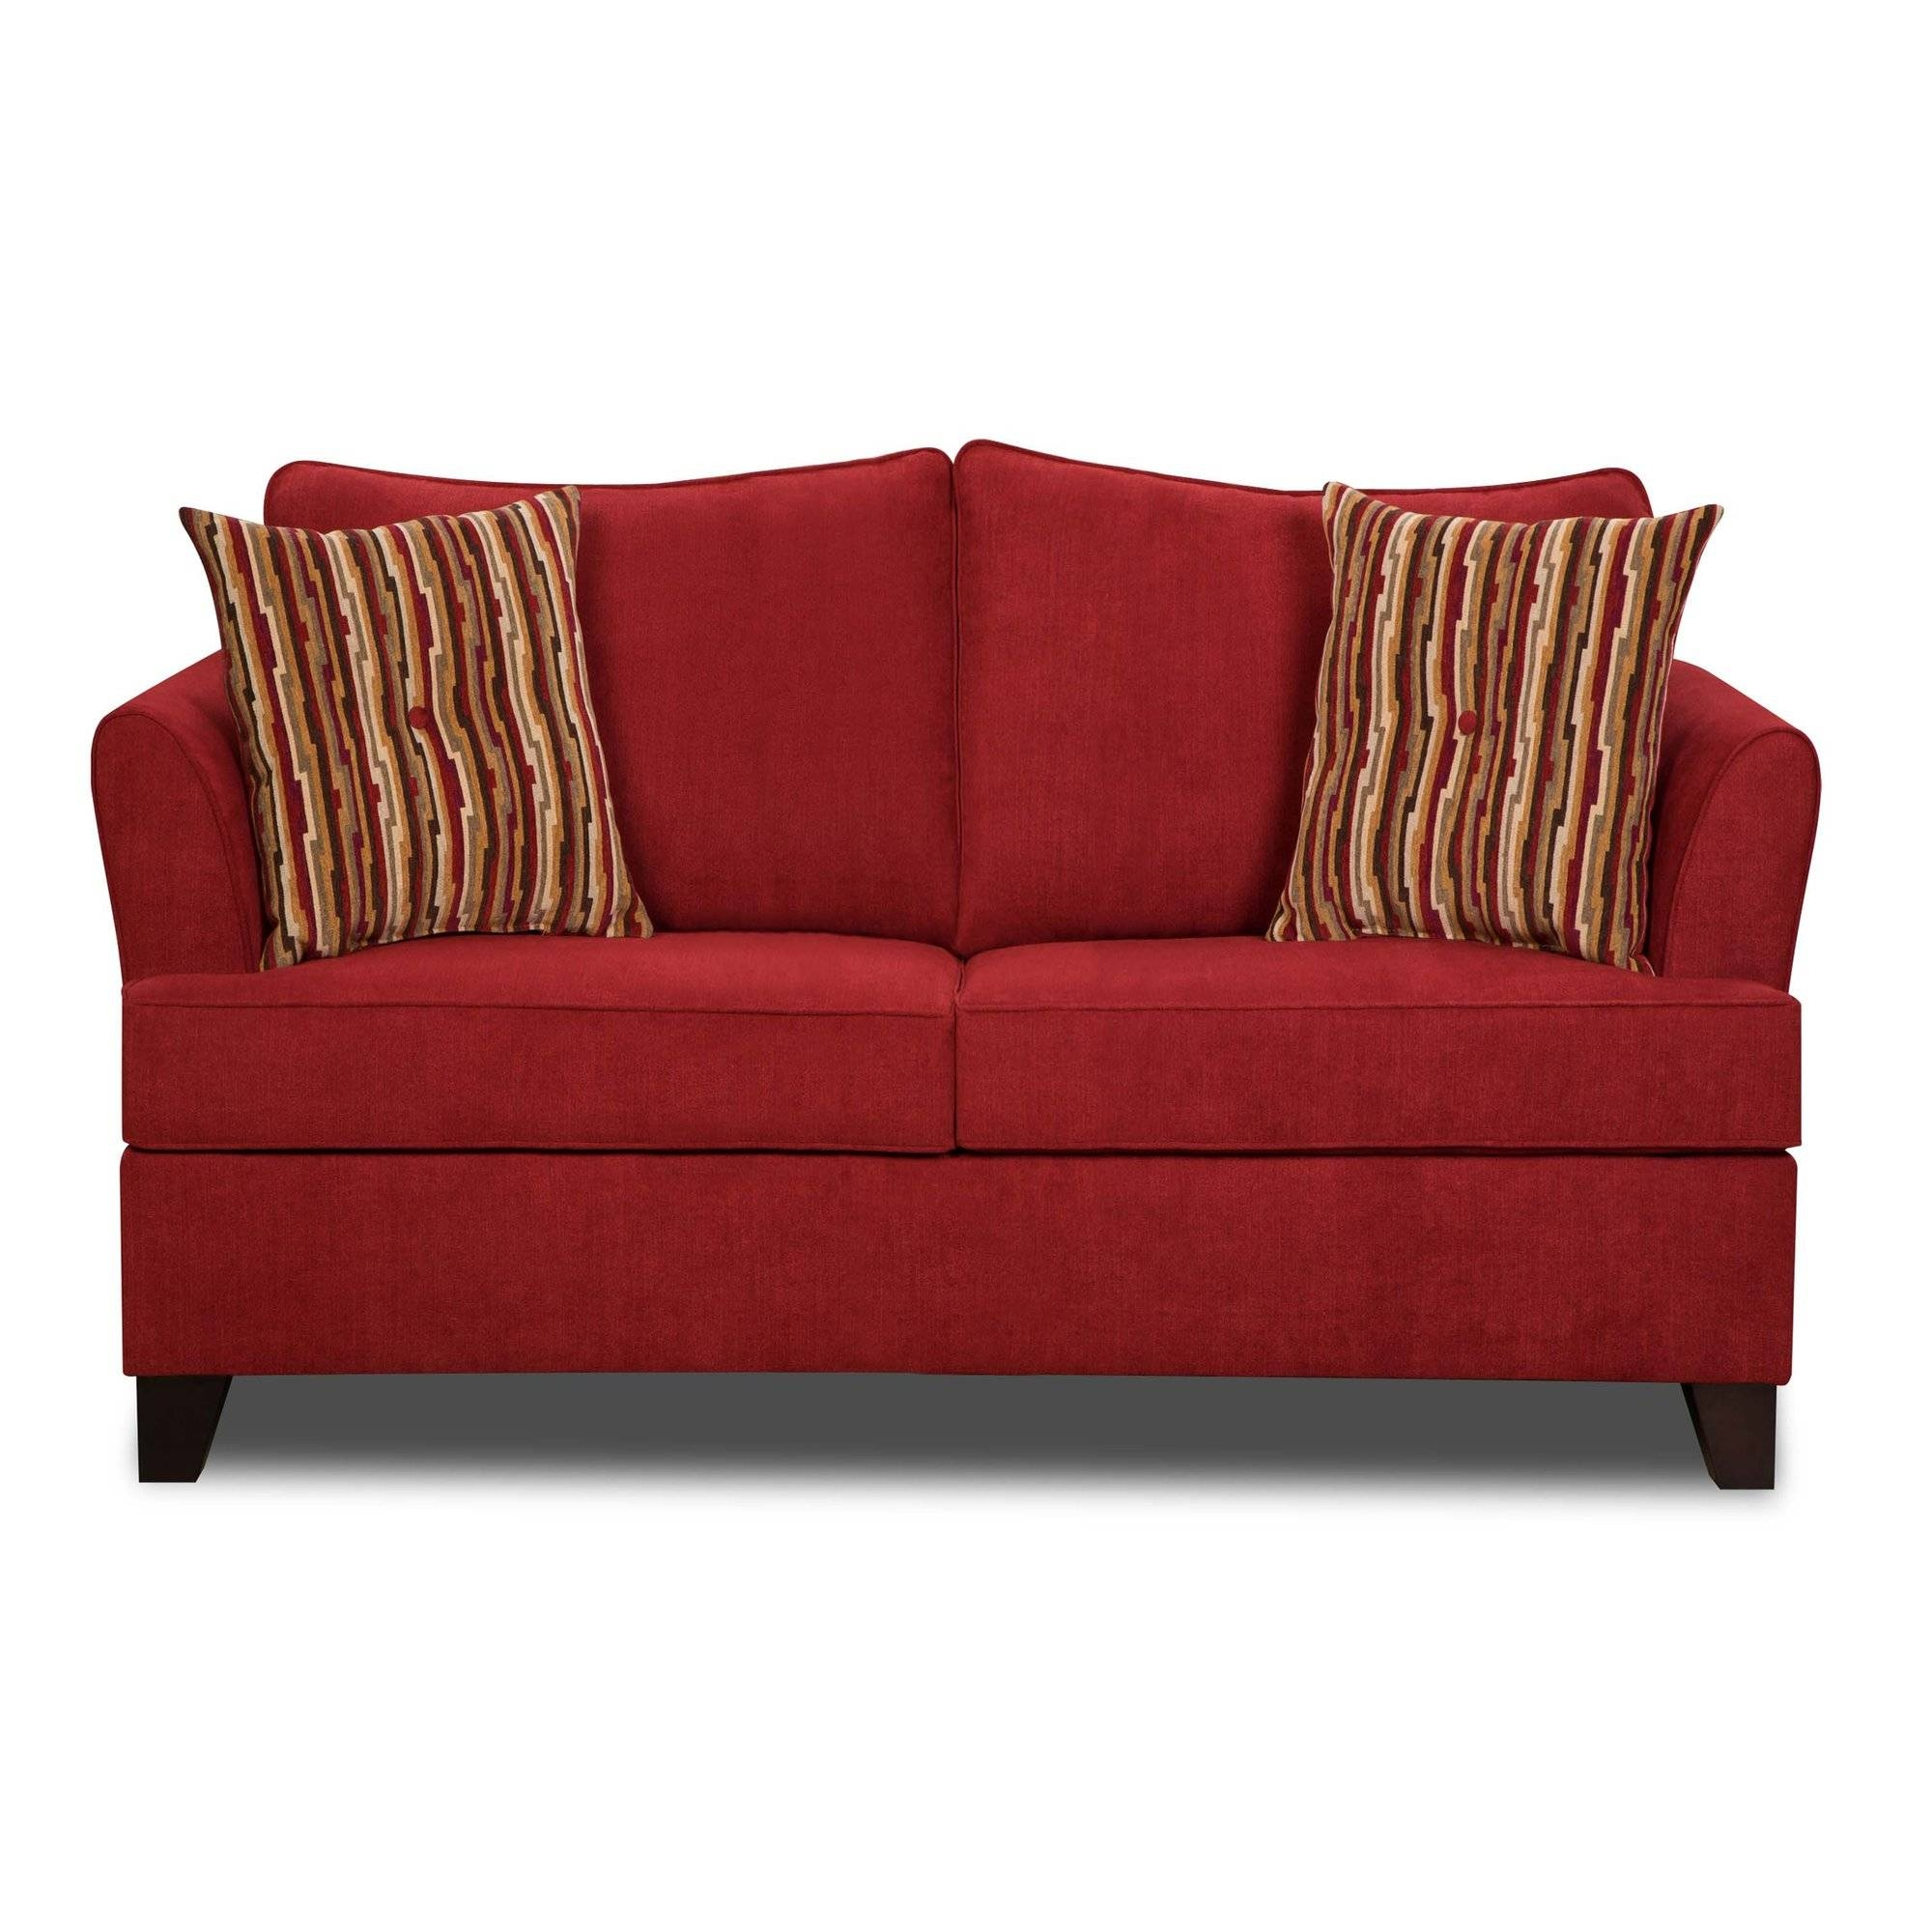 Furniture: Using Comfy Simmons Sleeper Sofa For Home Furniture in Twin Sleeper Sofa Chairs (Image 11 of 30)